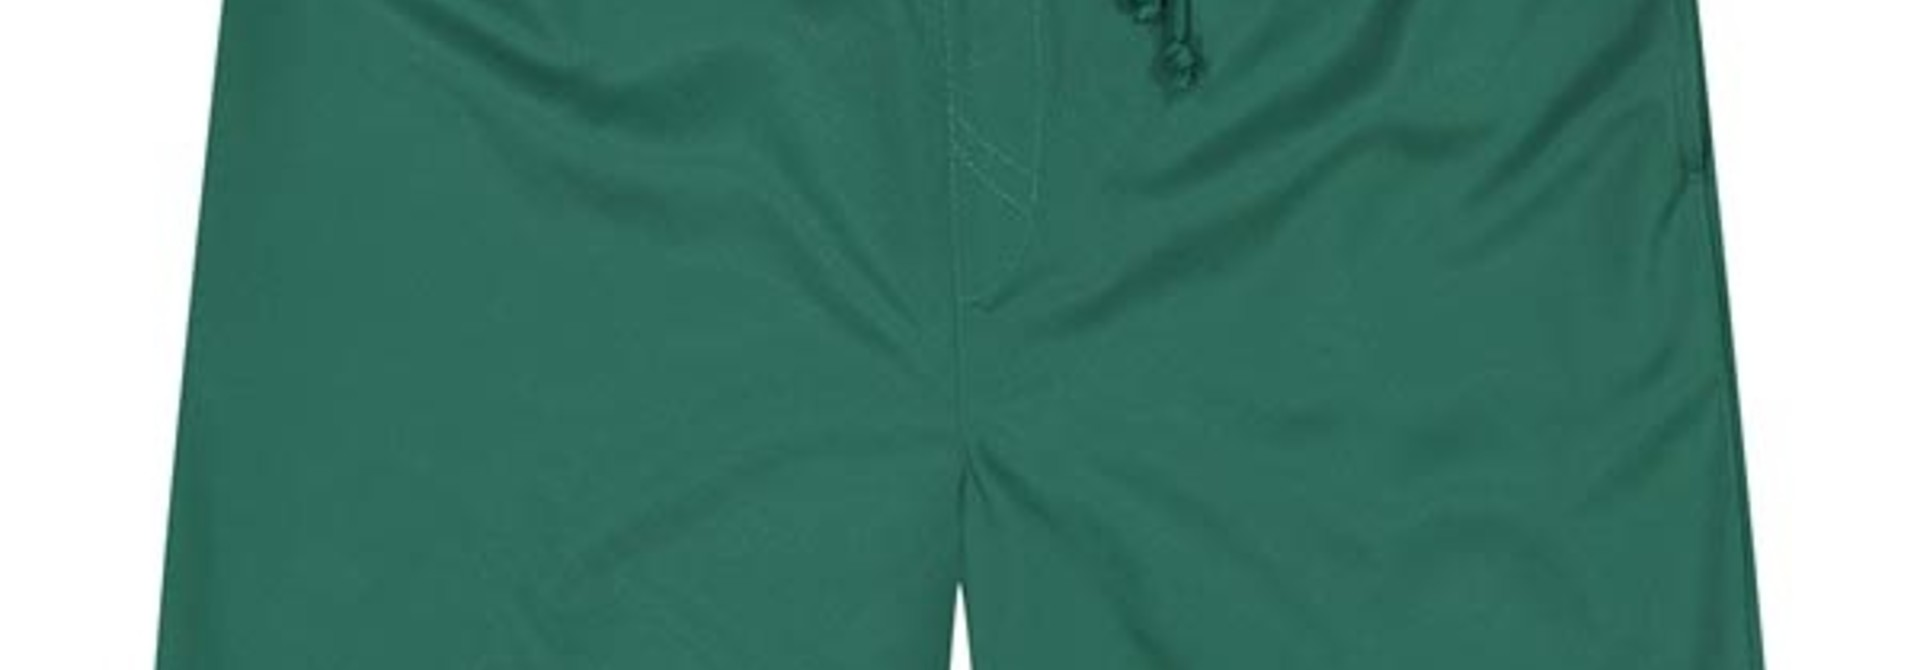 Lacoste/ shorts Green